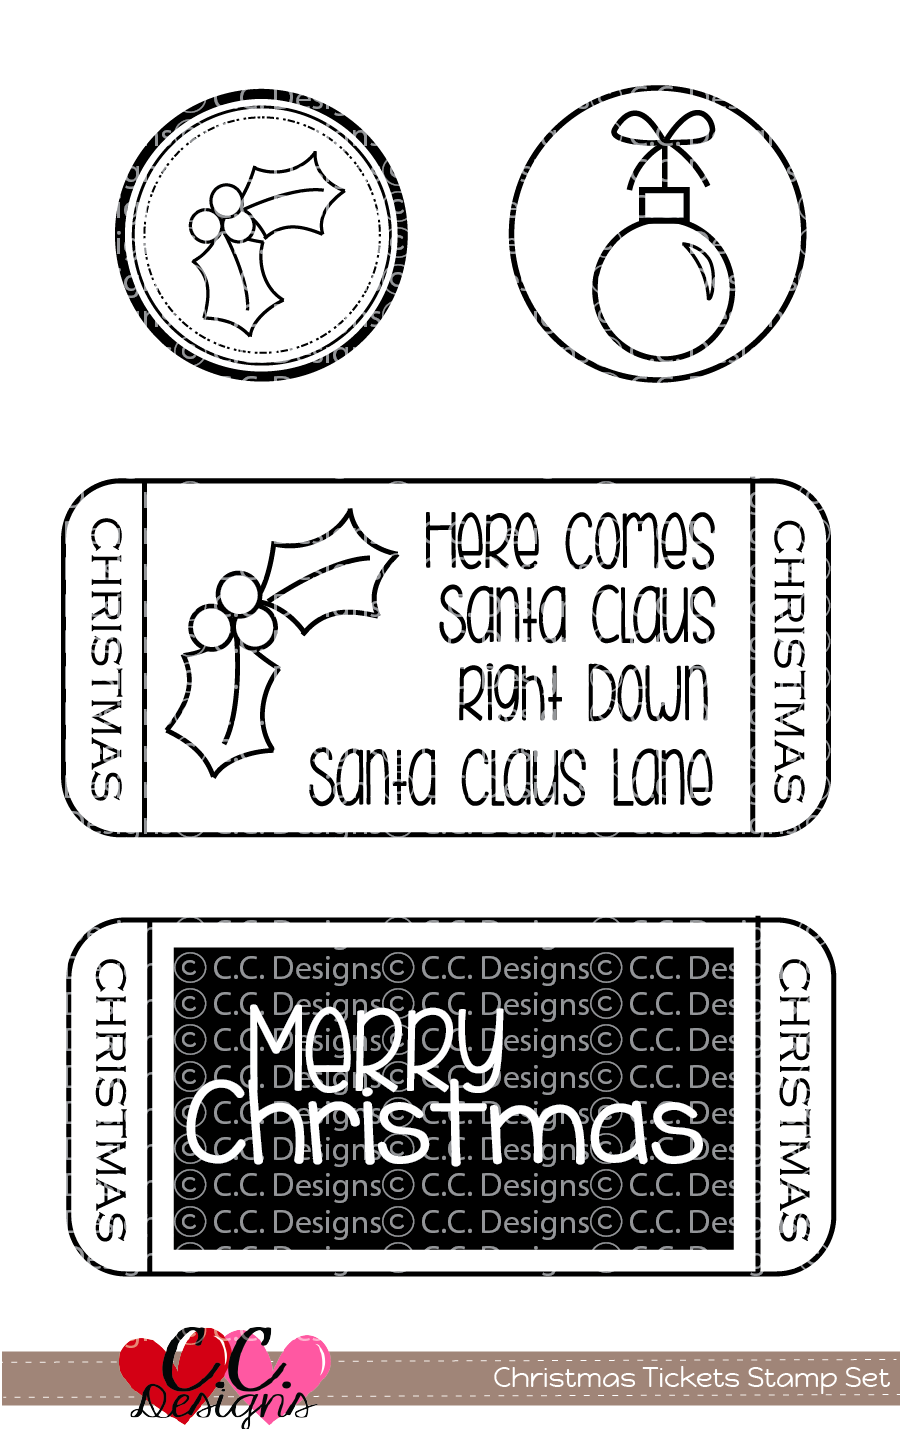 *PRE-ORDER* - CC Designs - Christmas Tickets Clear Set